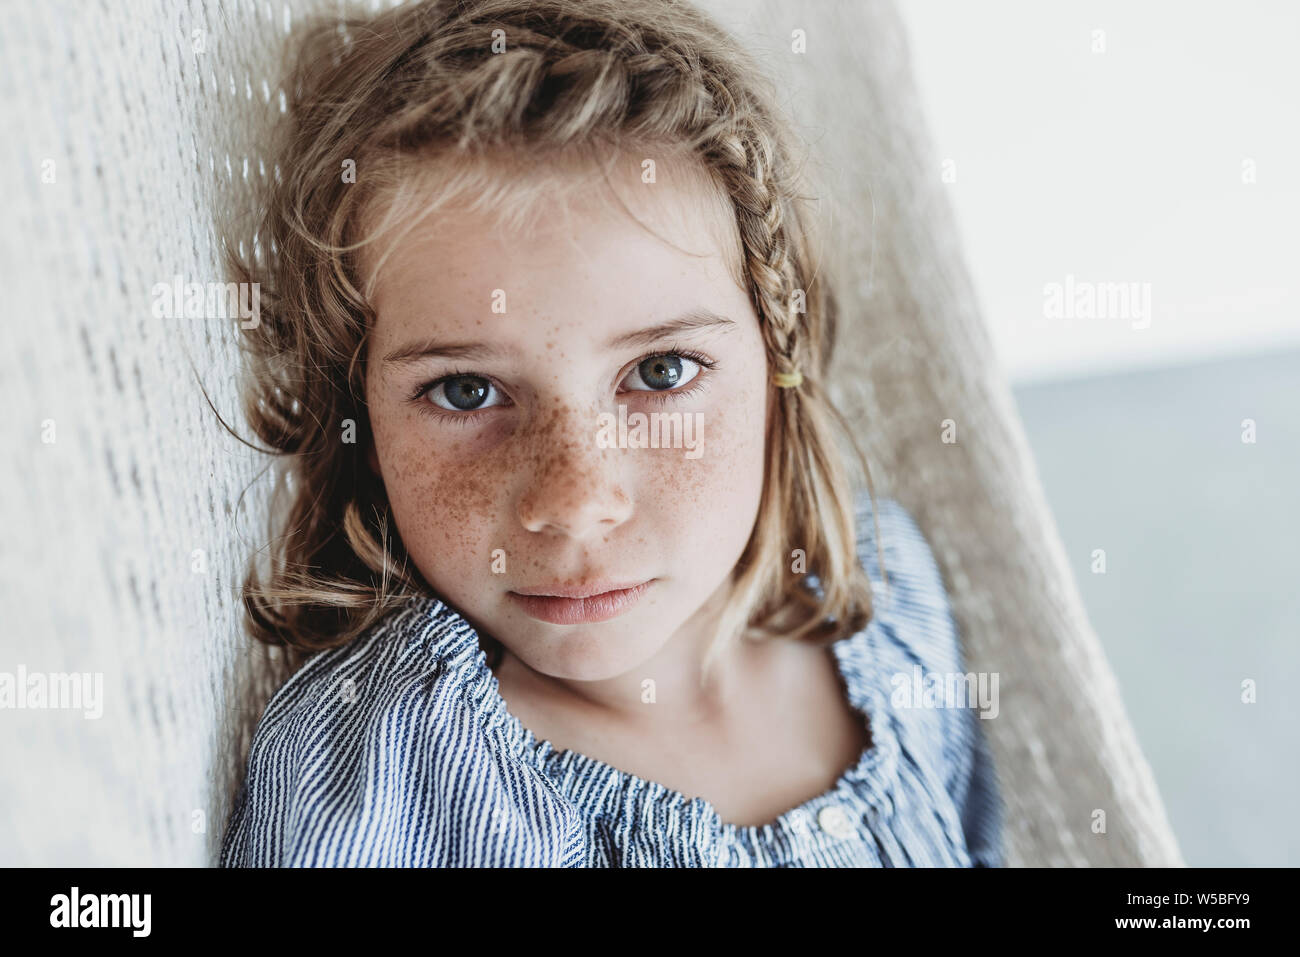 Portrait of serious school-aged girl with braid in her hair Stock Photo